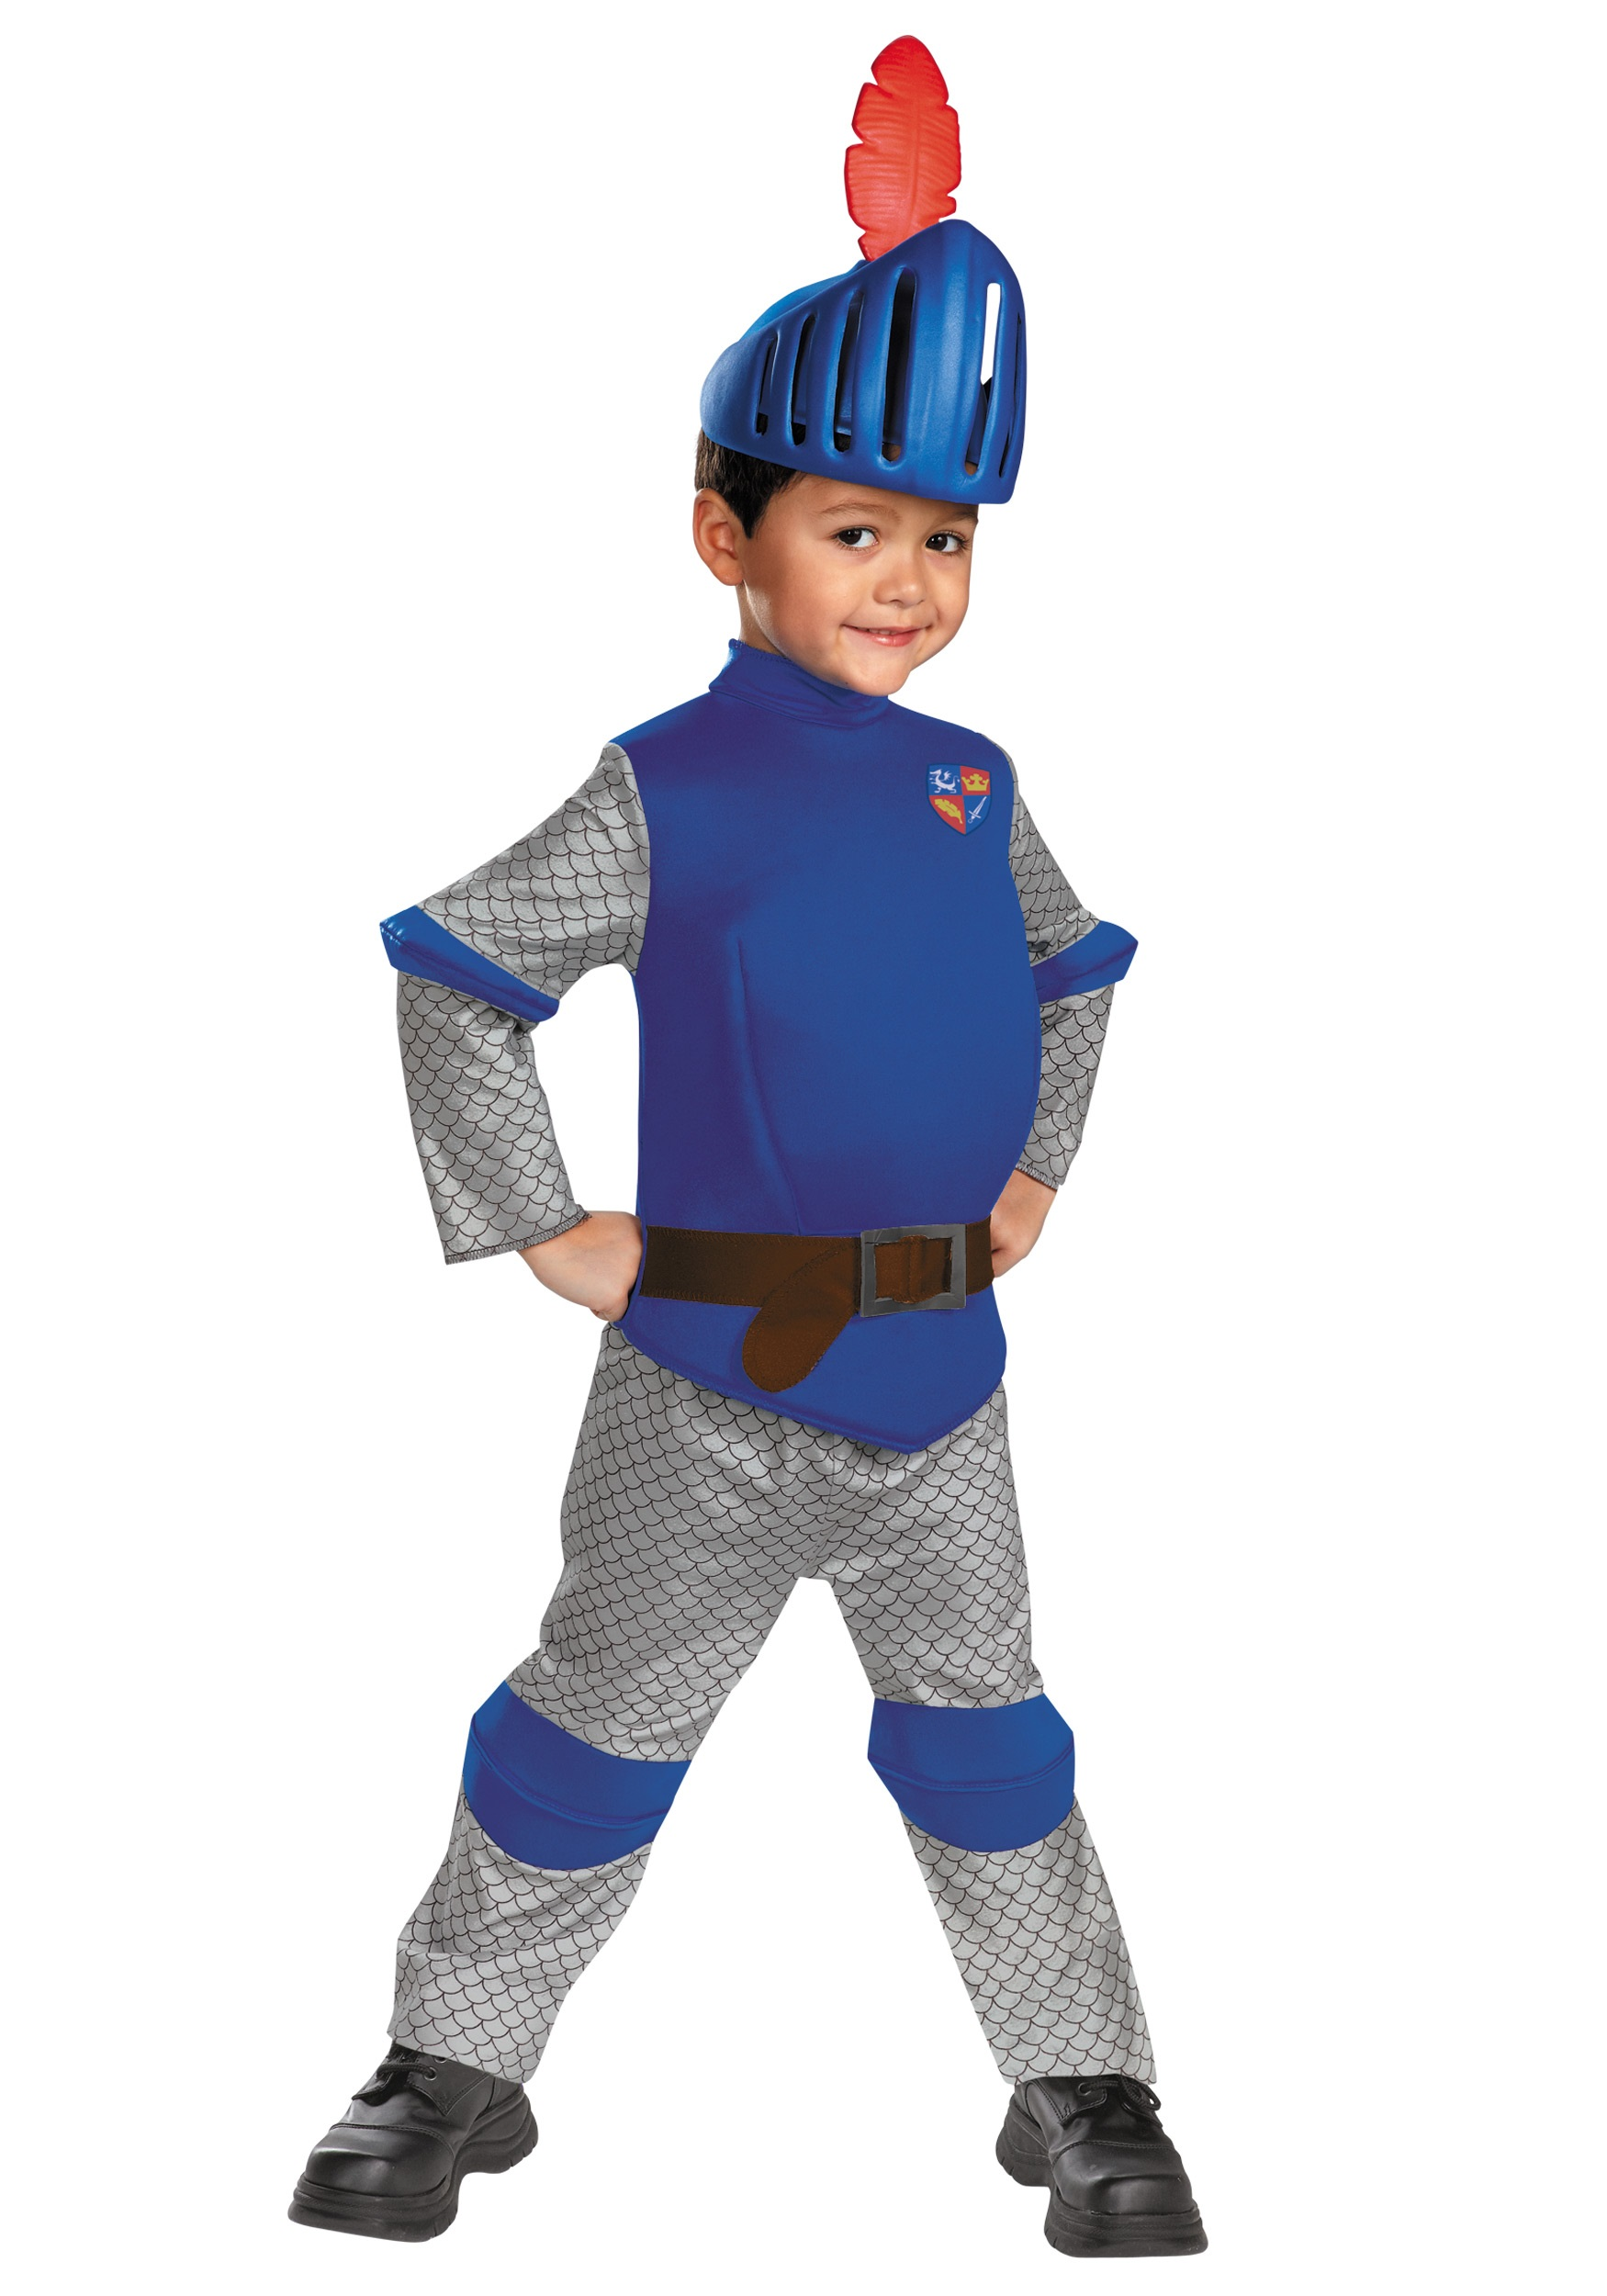 Toddler Mike the Knight Deluxe Costume  sc 1 st  Halloween Costumes & Toddler Mike the Knight Deluxe Costume - Halloween Costumes